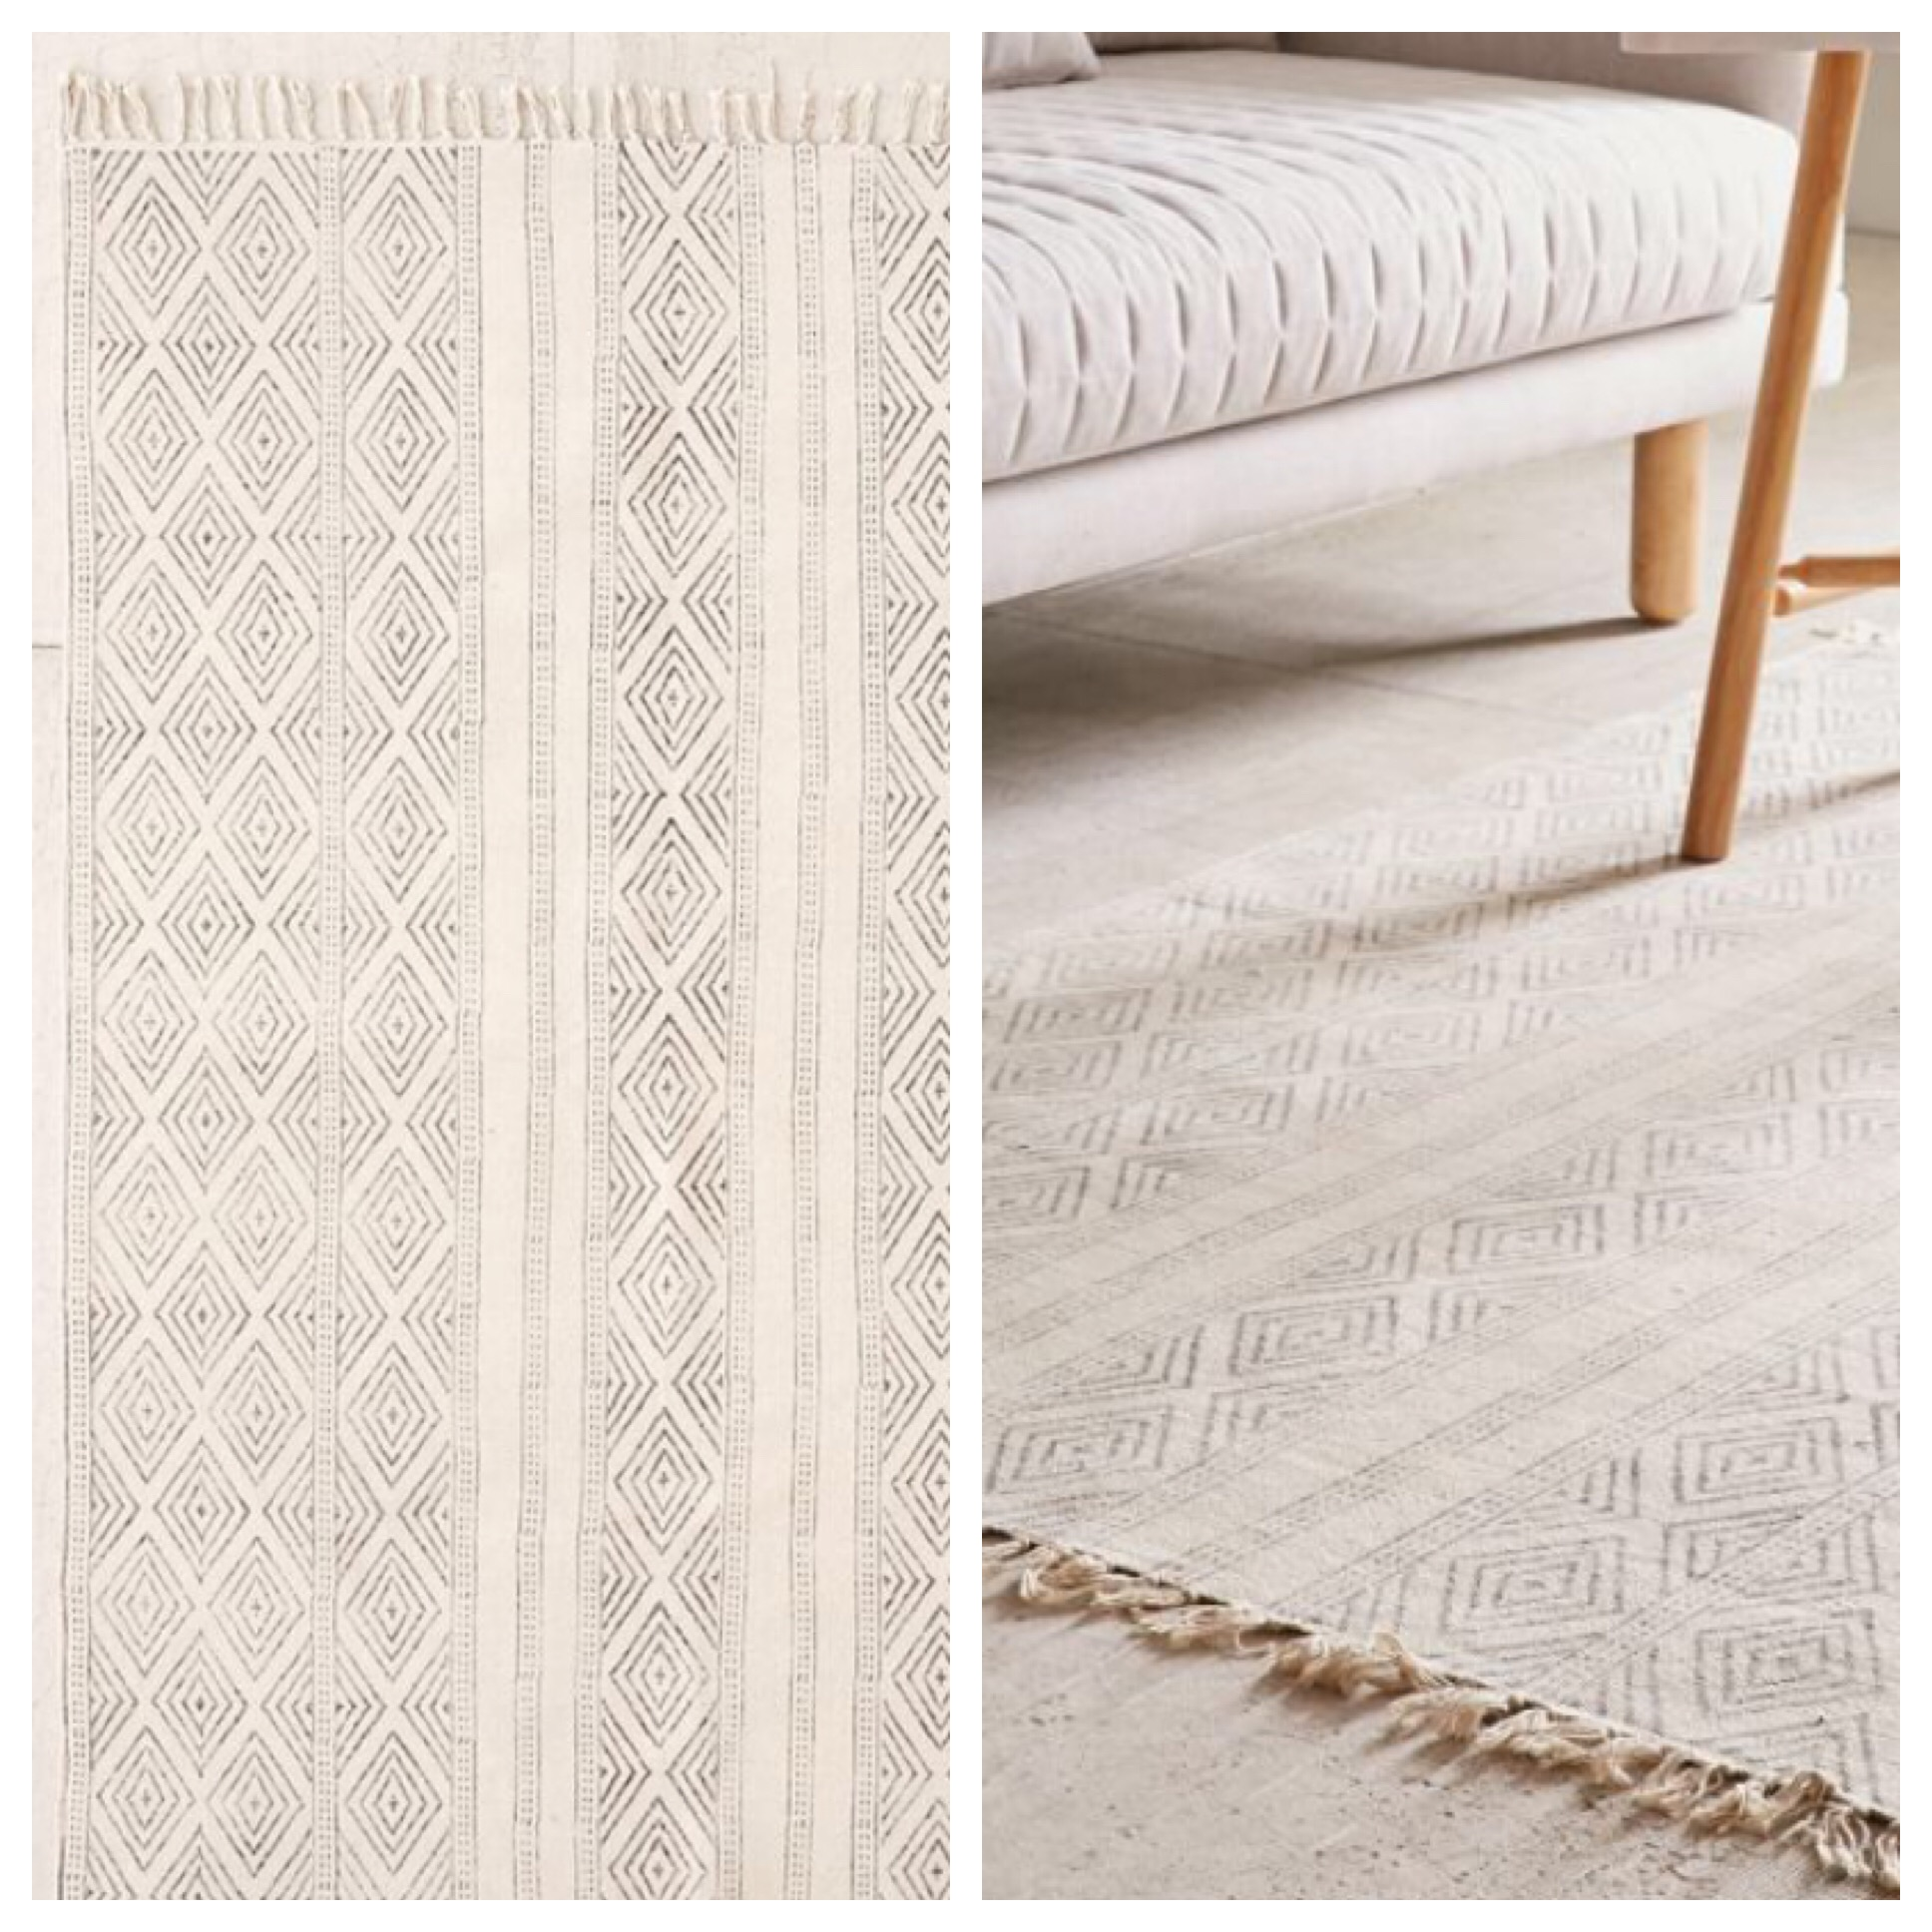 You can get the Tanzin Vertical Block Print rug from Urban Outfitters for 9x12 $629 OR you can get the Chembra Block Printed Flatweave Concentric Diamonds Rug from RUGSUSA for $348. THEY ARE SAME SAME.